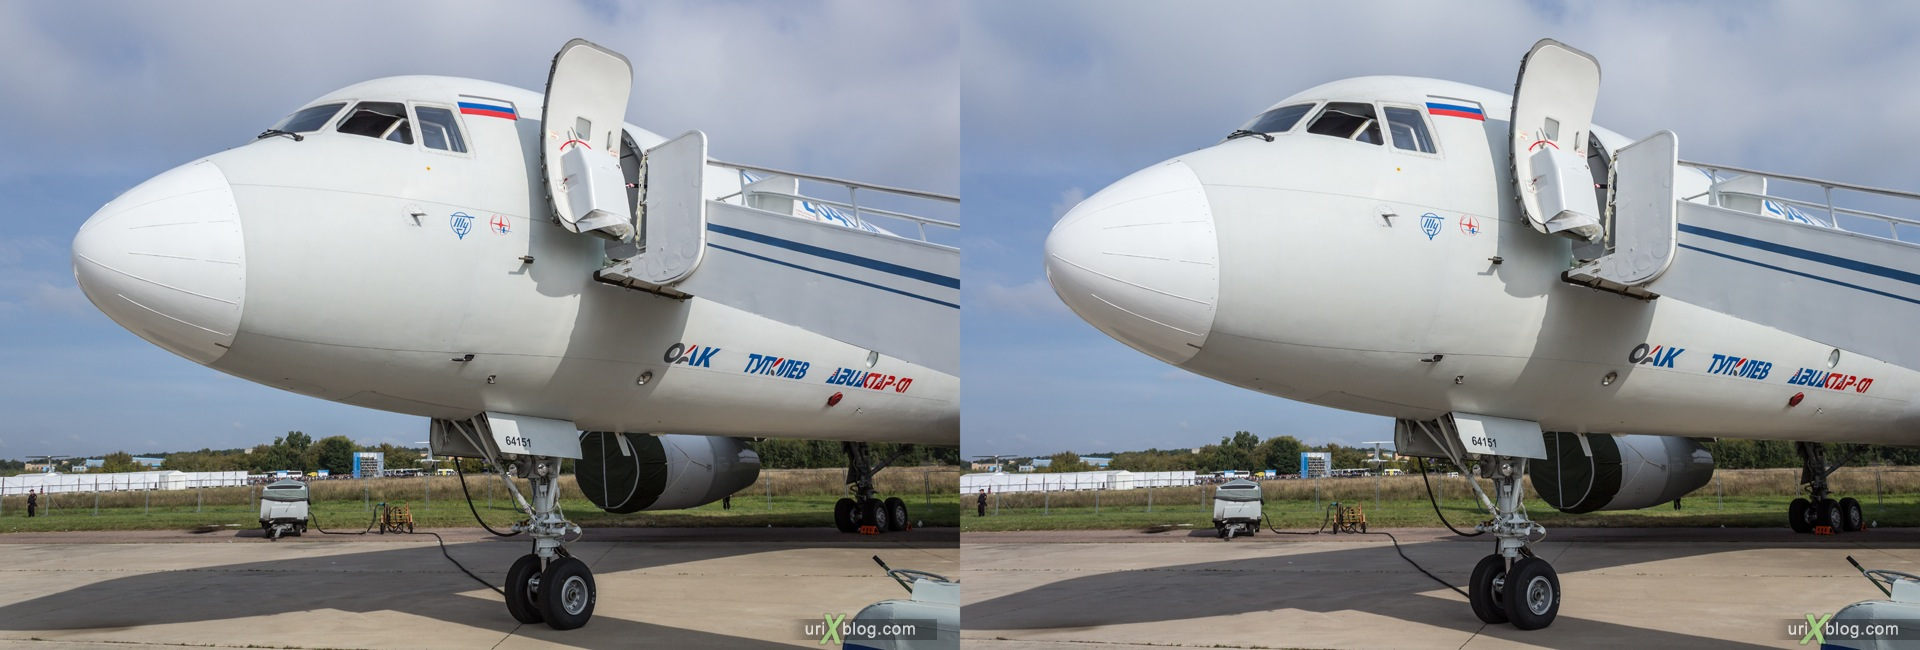 2013, Tu-204SM, MAKS, International Aviation and Space Salon, Russia, Ramenskoye airfield, airplane, 3D, stereo pair, cross-eyed, crossview, cross view stereo pair, stereoscopic